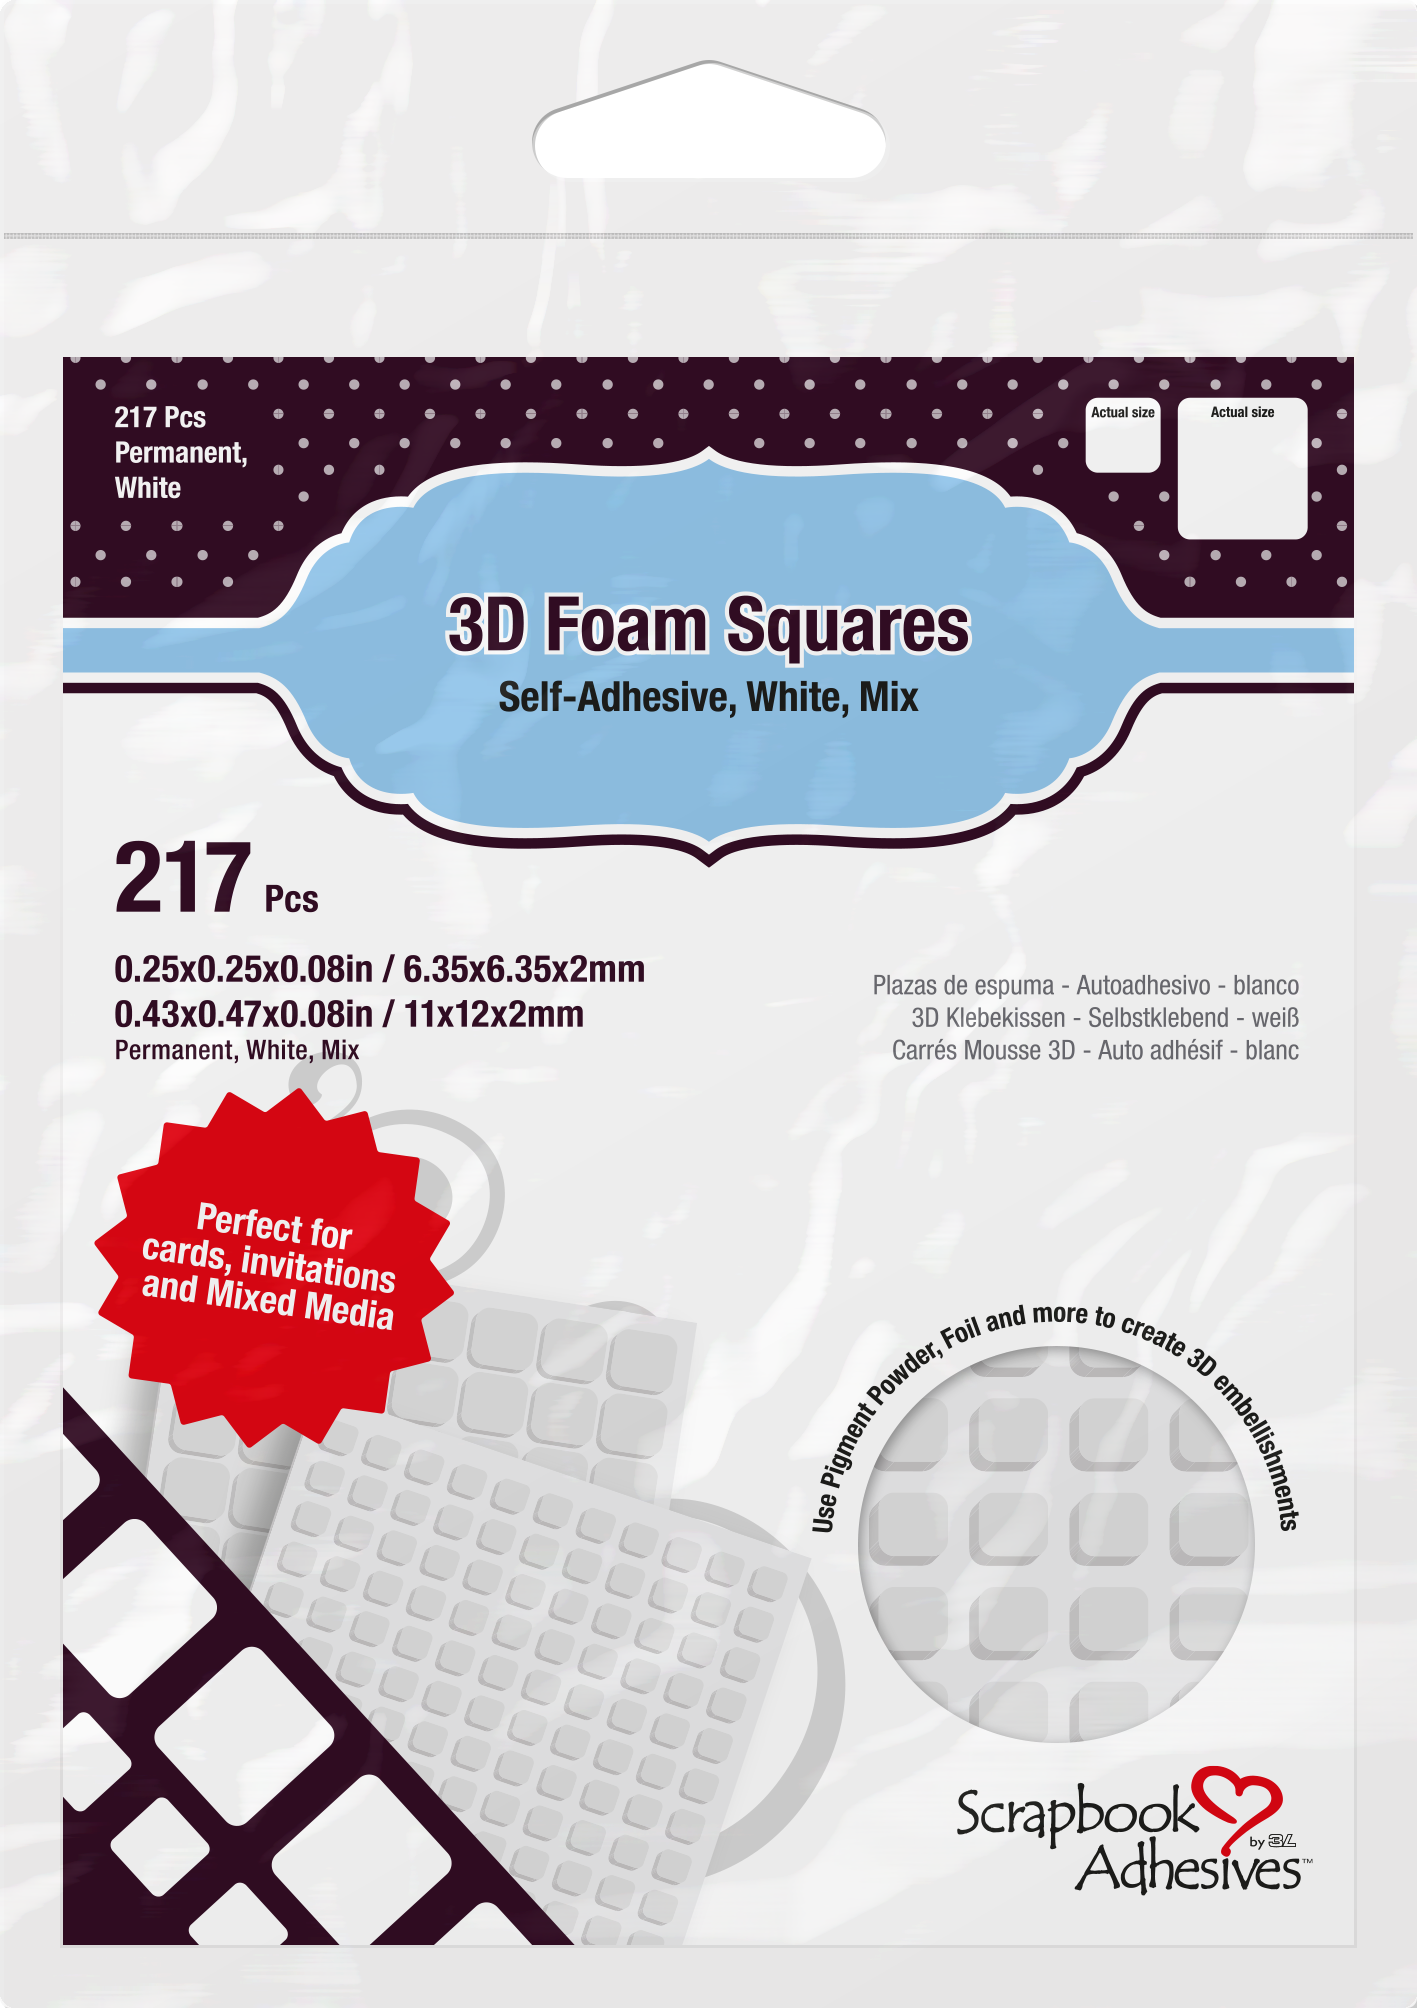 Scrapbook Adhesives by 3: 3D Foam Squares | Creative Scrapbooker Magazine